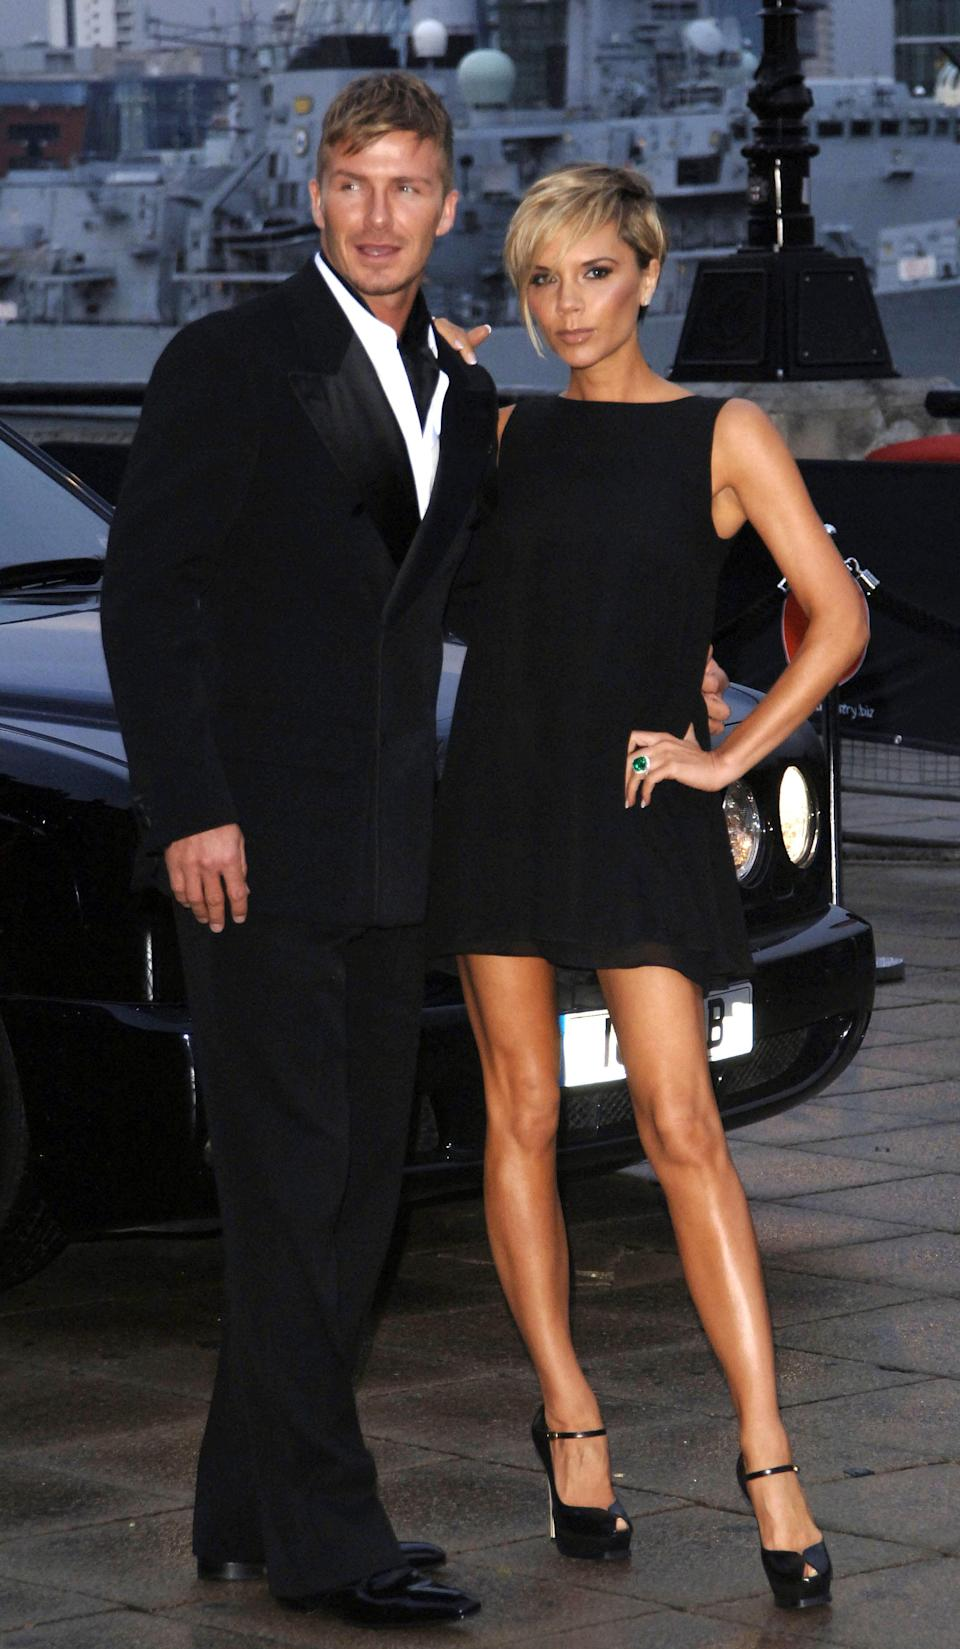 <strong>The Beckhams, posing for photographers. (PA)</strong>